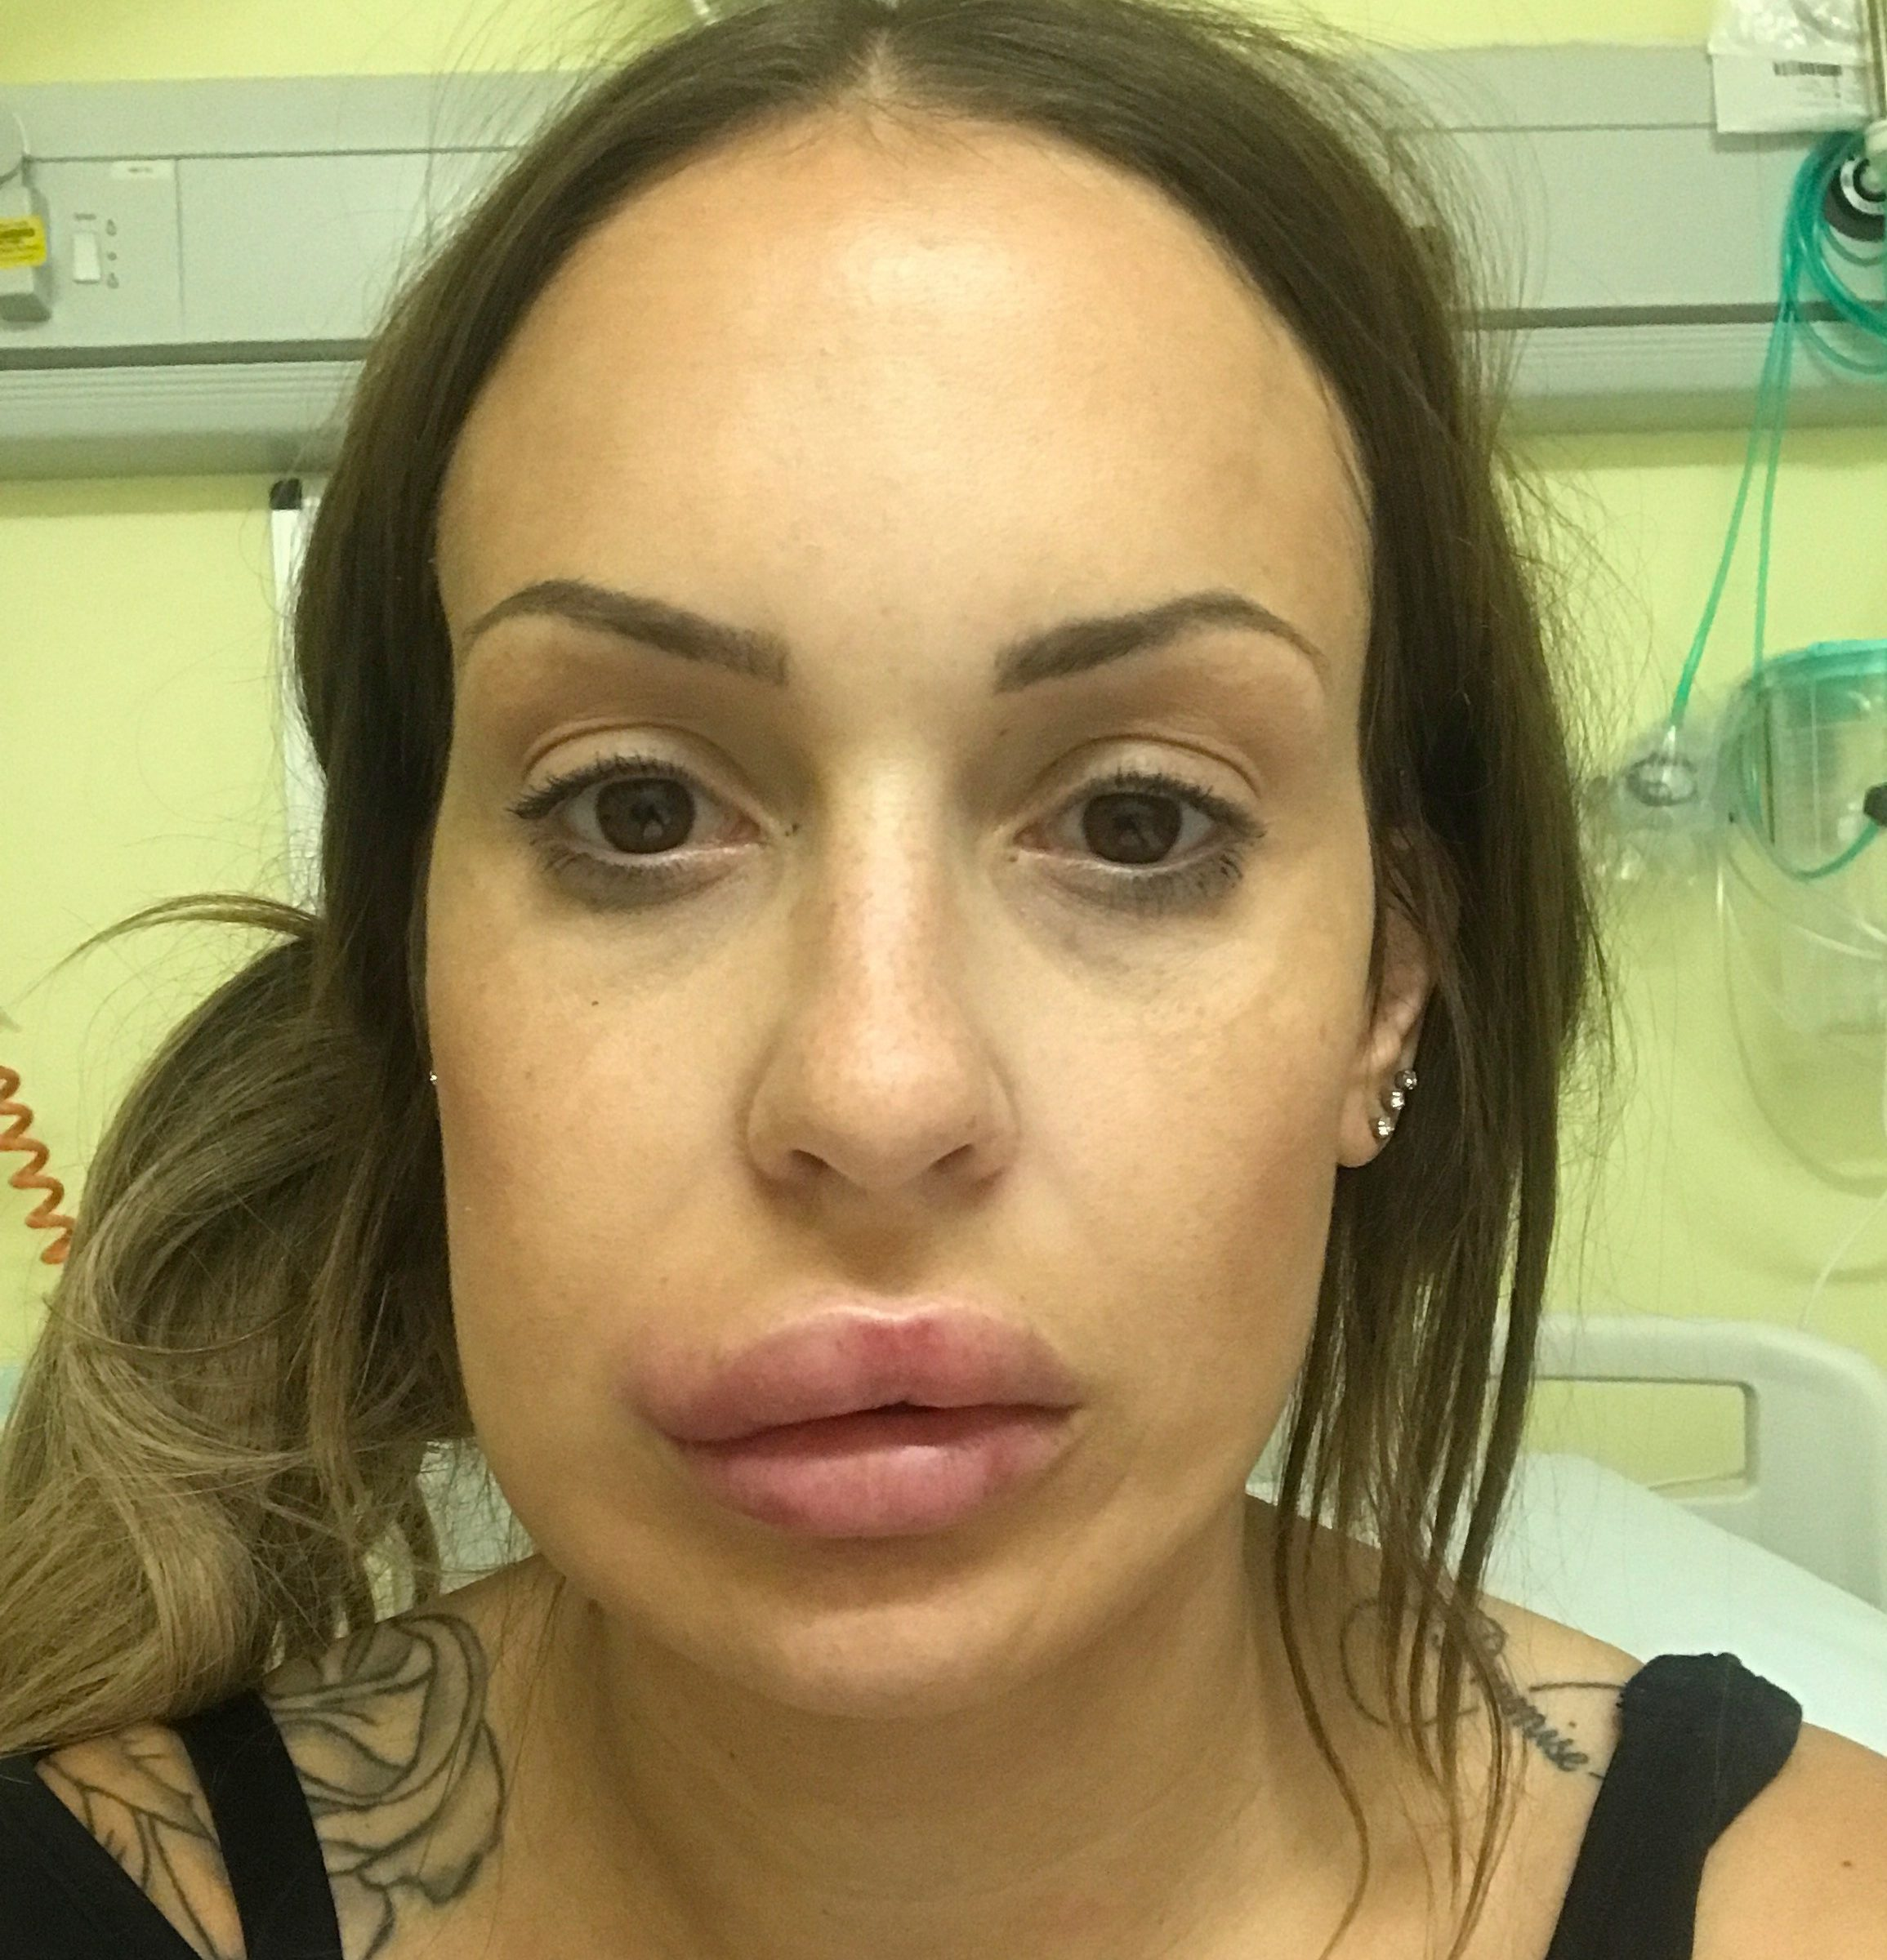 Mum-of-two Siobhan Phelan, 30, nearly lost her top lip after paying £125 for lip fillers she saw on Facebook